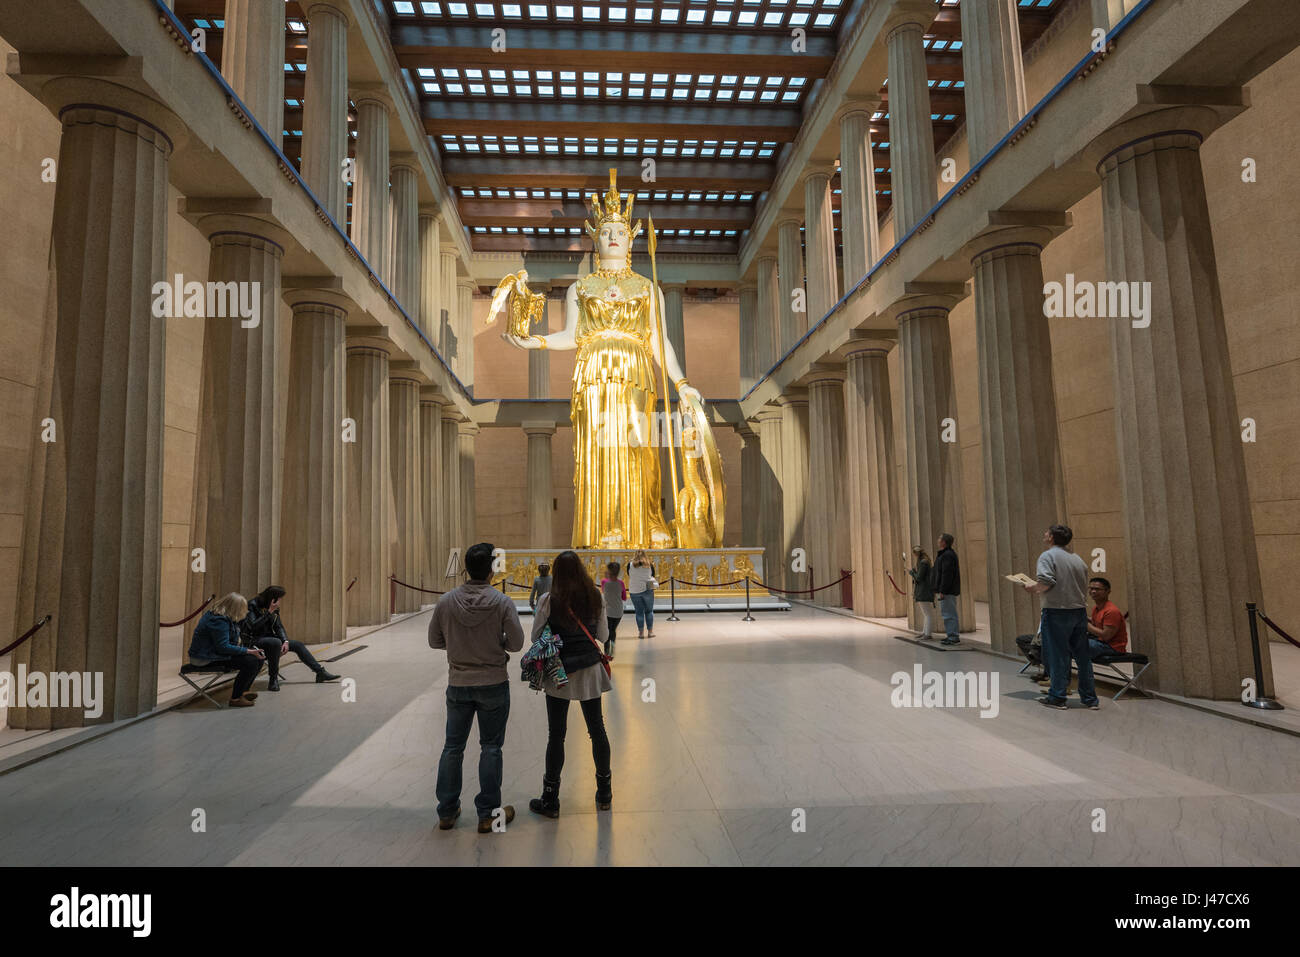 Huge golden homage to the statue of Athena Parthenos gleams in the Parthenon, Nashville - Stock Image